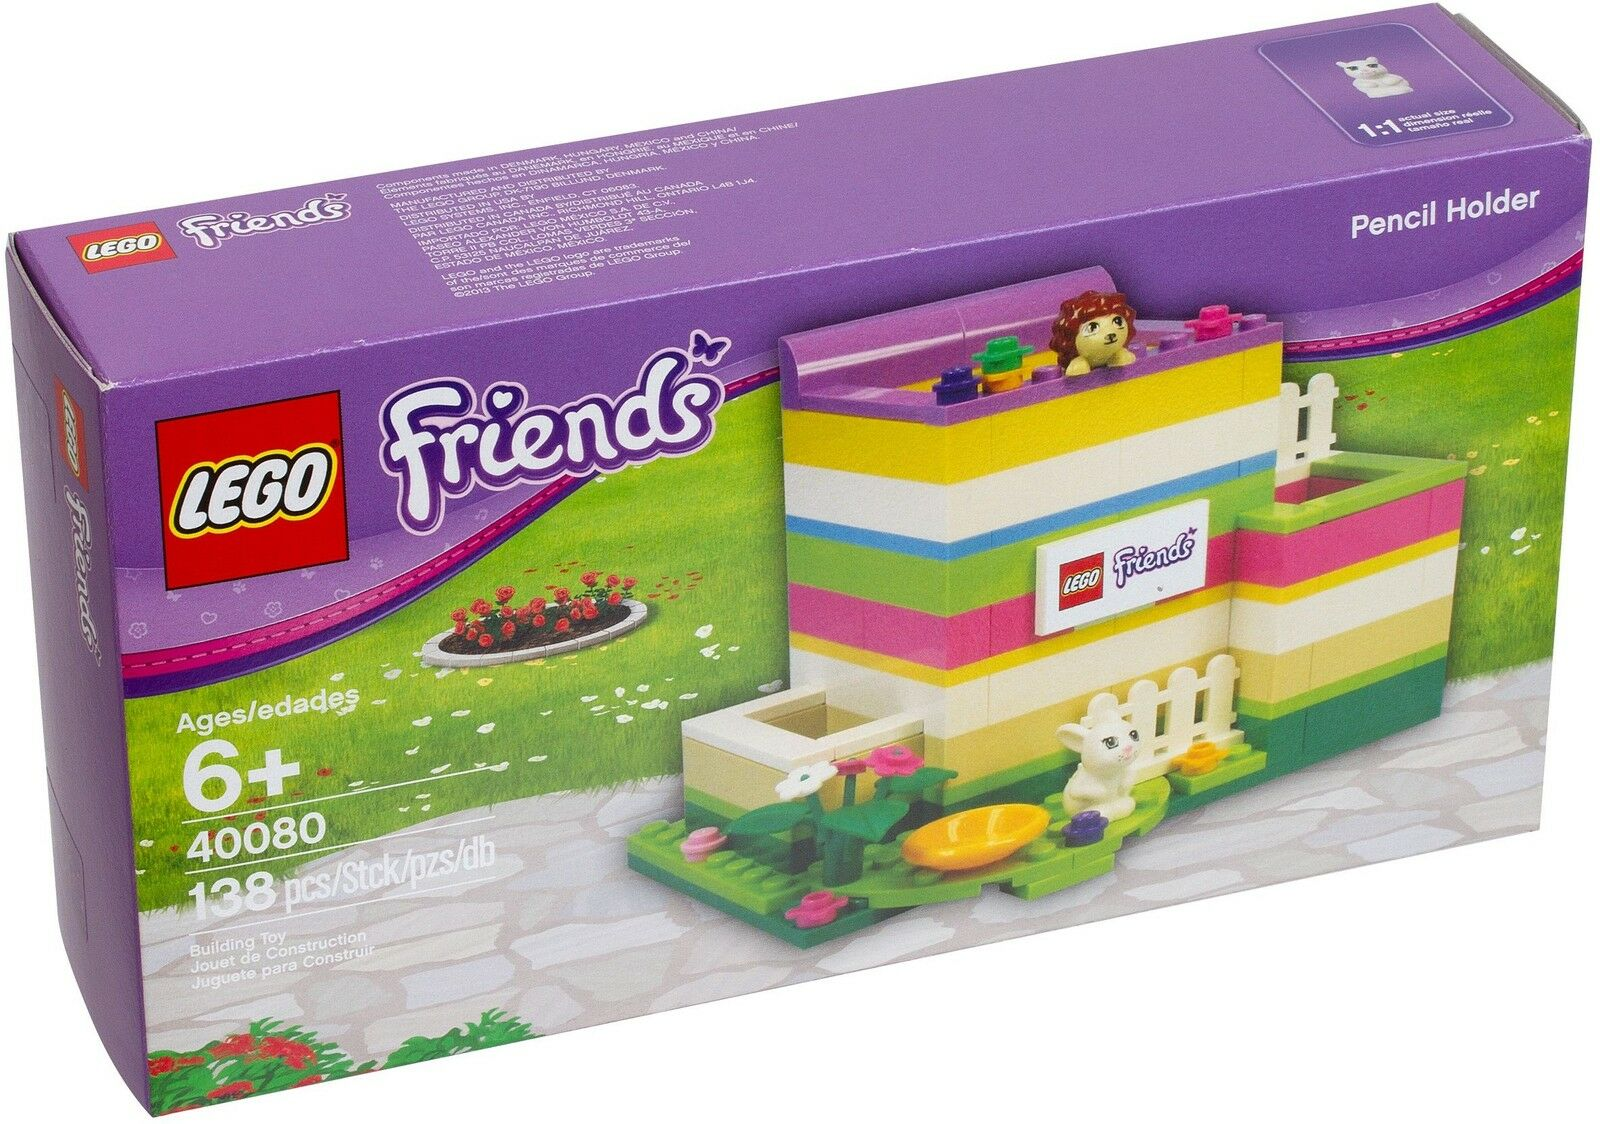 LEGO® Friends 40080  Stiftehalter NEU OVP_ Pencil Holder NEW MISB NRFB